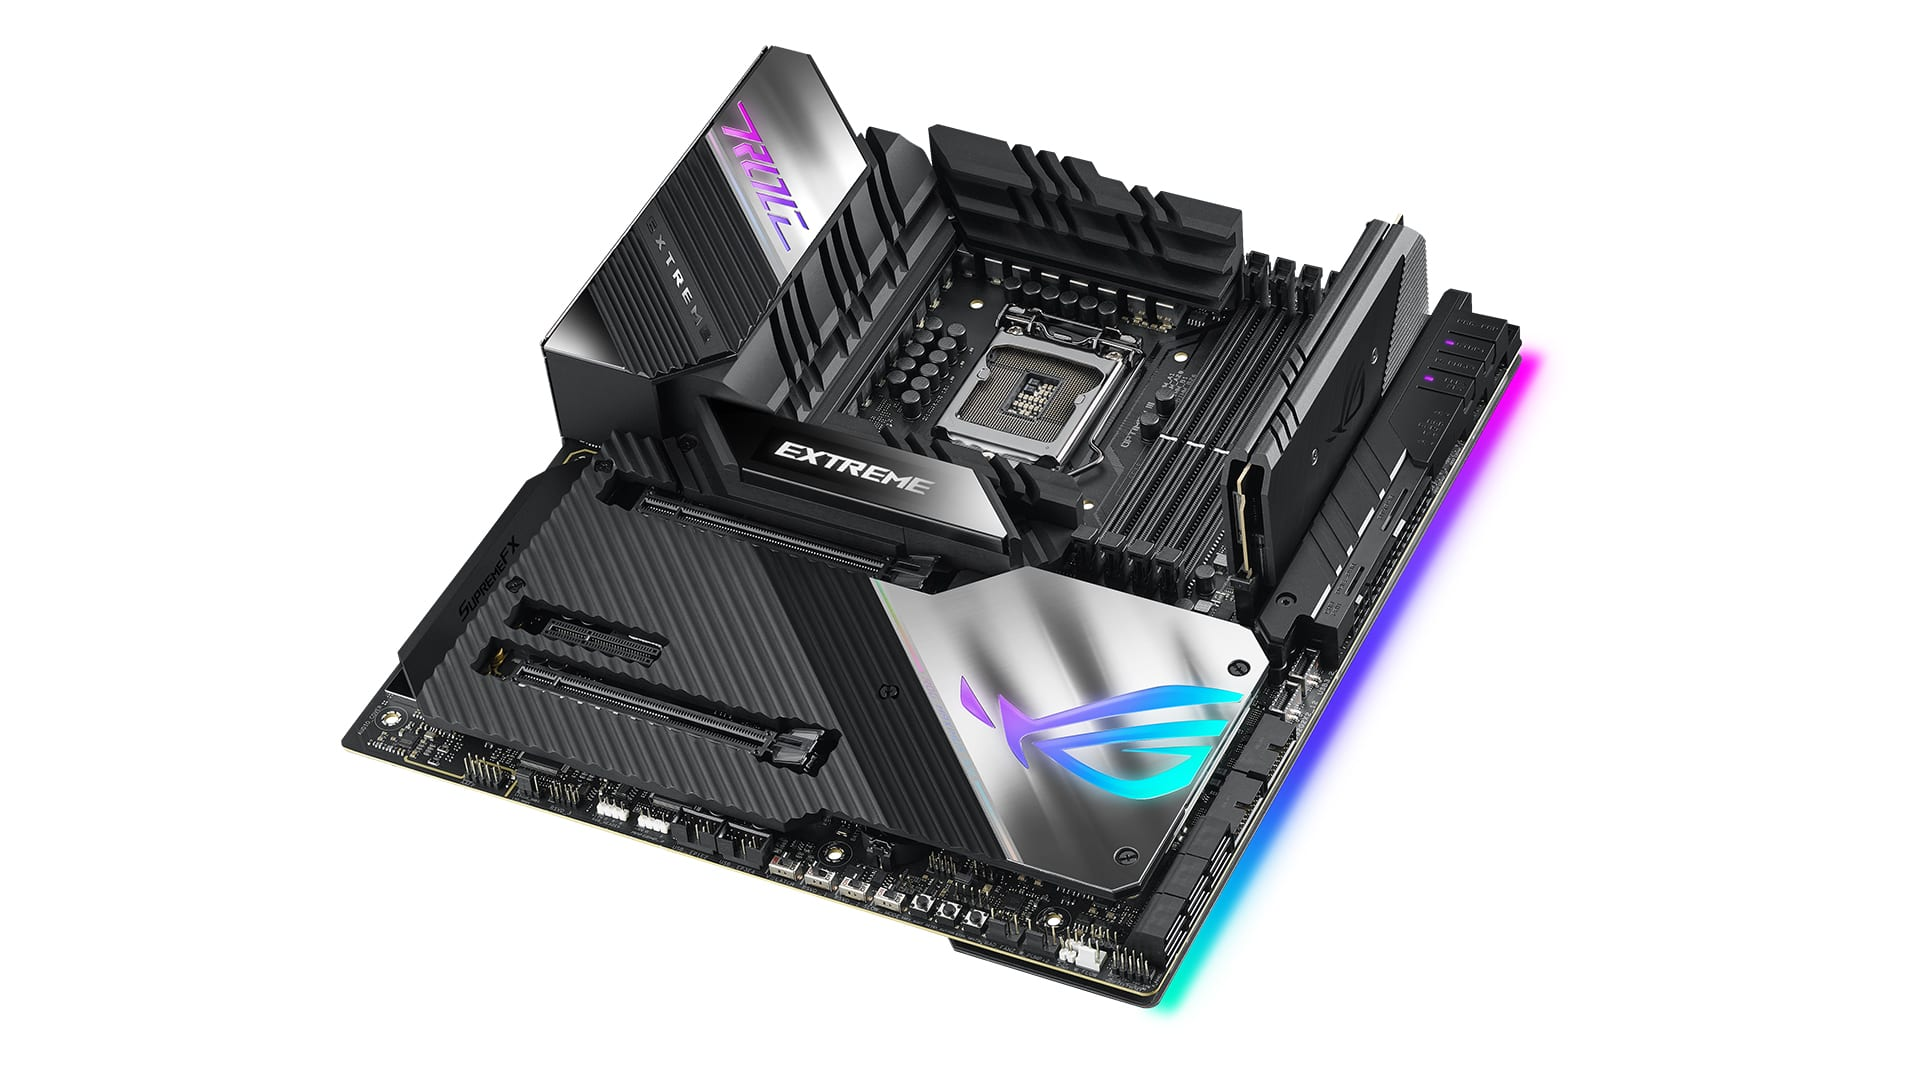 CES 2021 – Oι νέες MSI 500 series motherboards